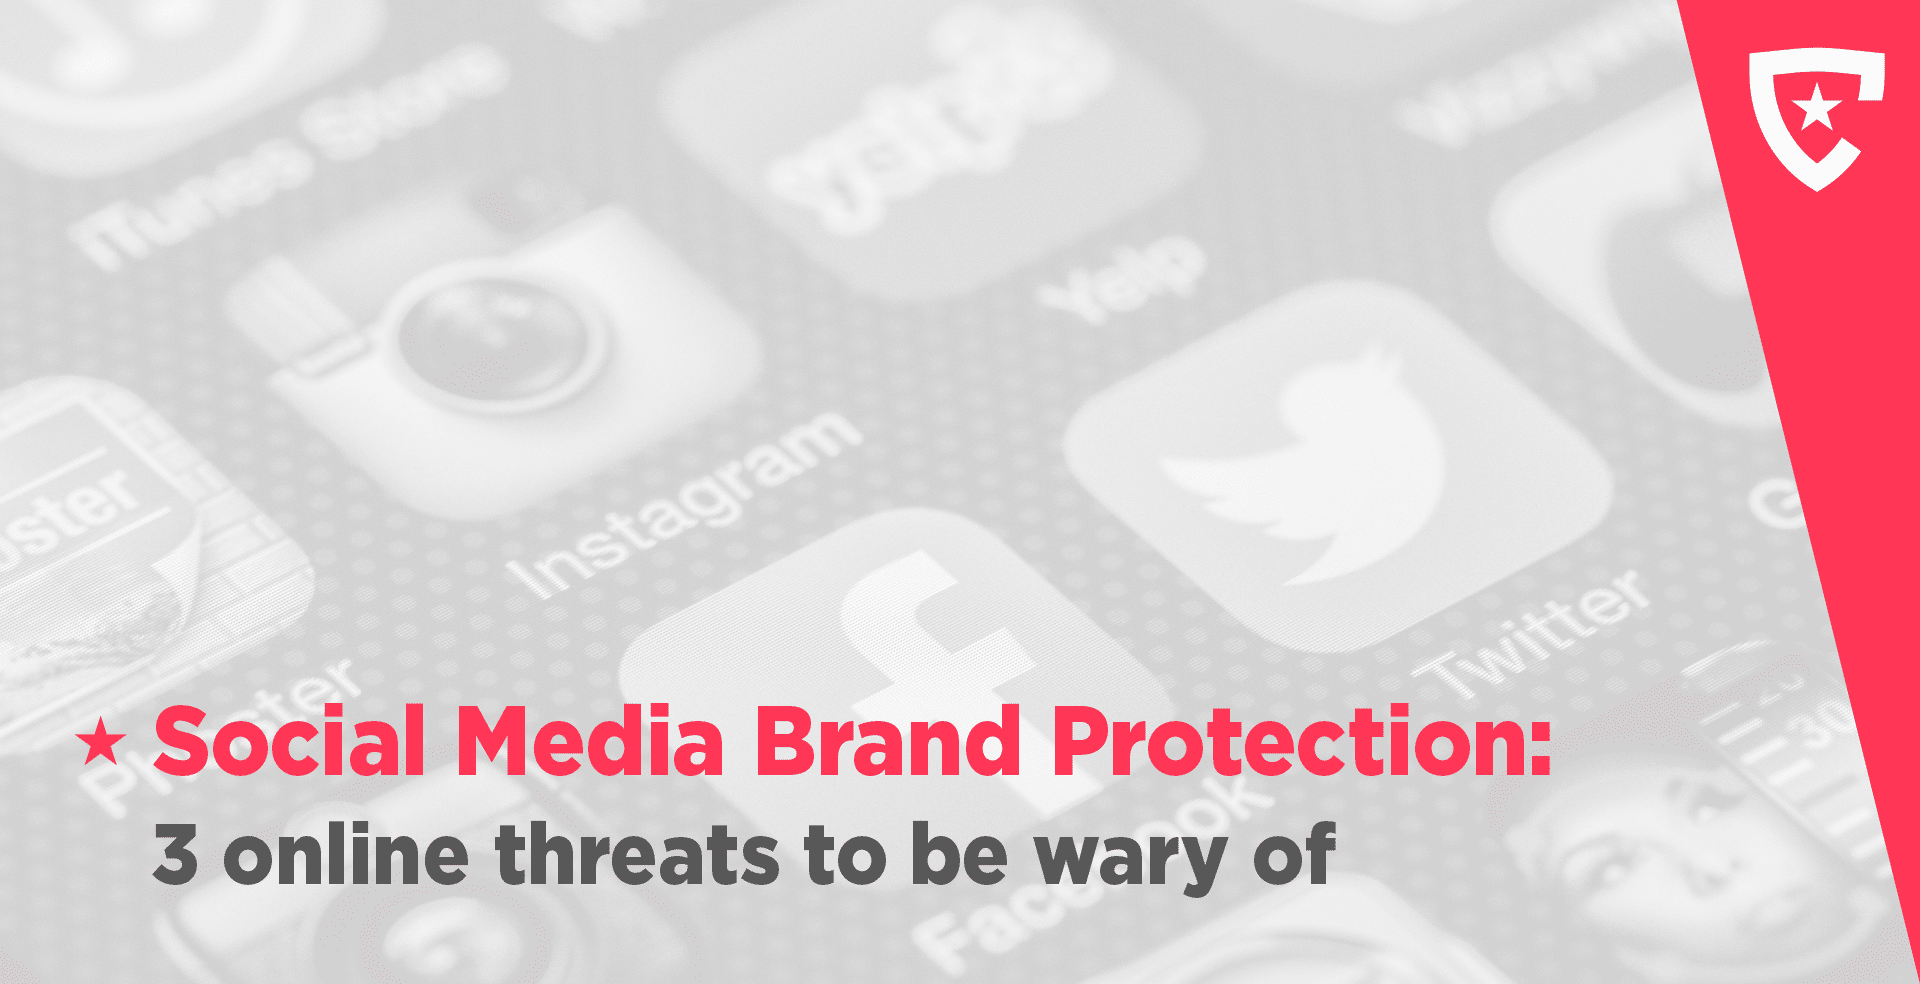 Social Media Brand Protection: 3 Online Threats to Be Wary Of